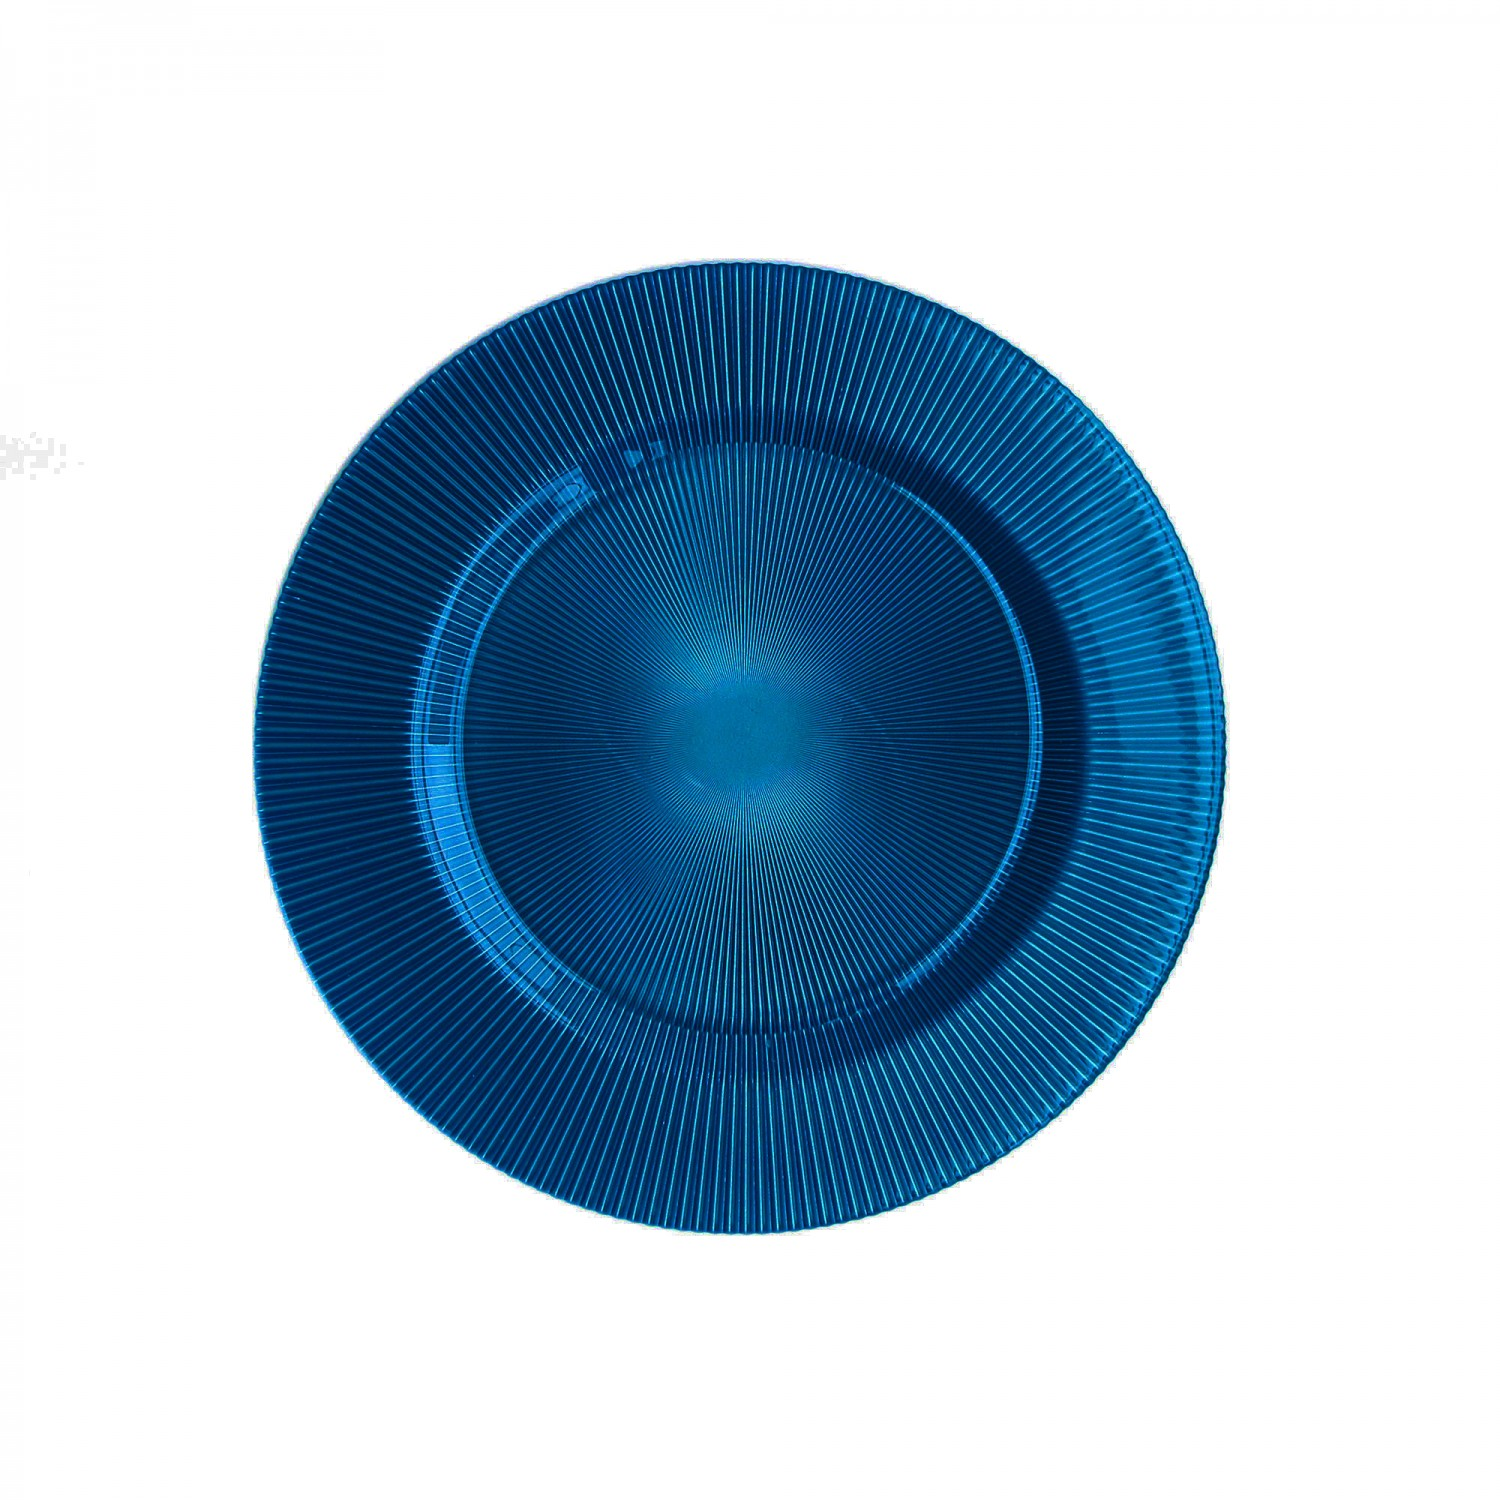 Sunray Cobalt Charger Plate 13""